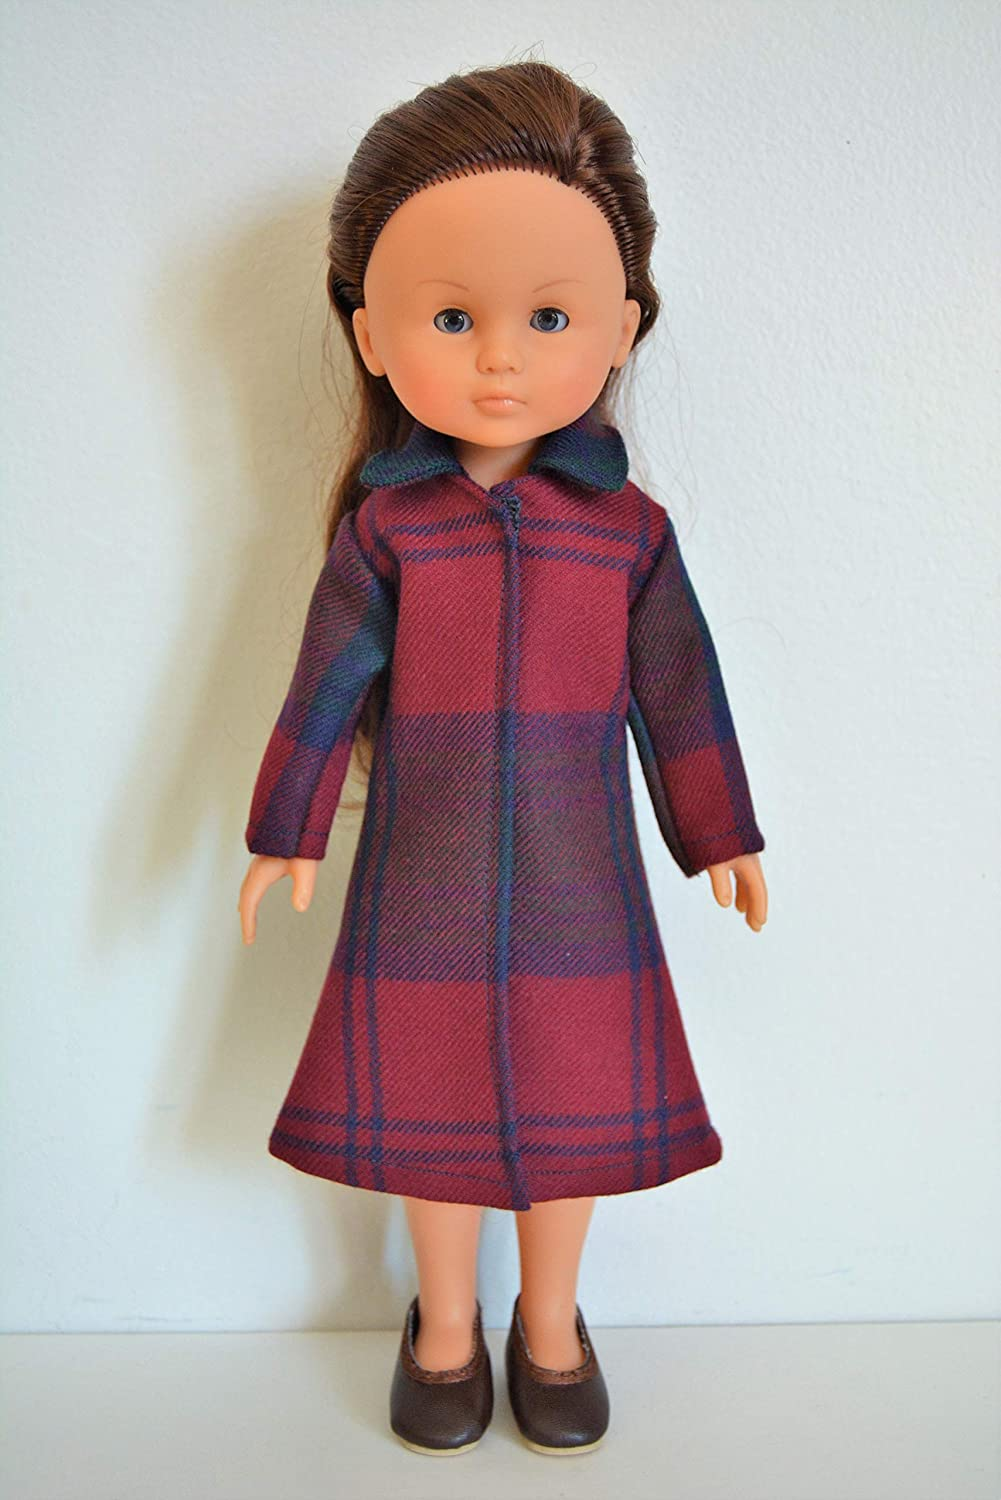 Handmade Doll Clothes Coat Assorted Colors fit 13 Corolle Les Cheries Dolls Handcraft